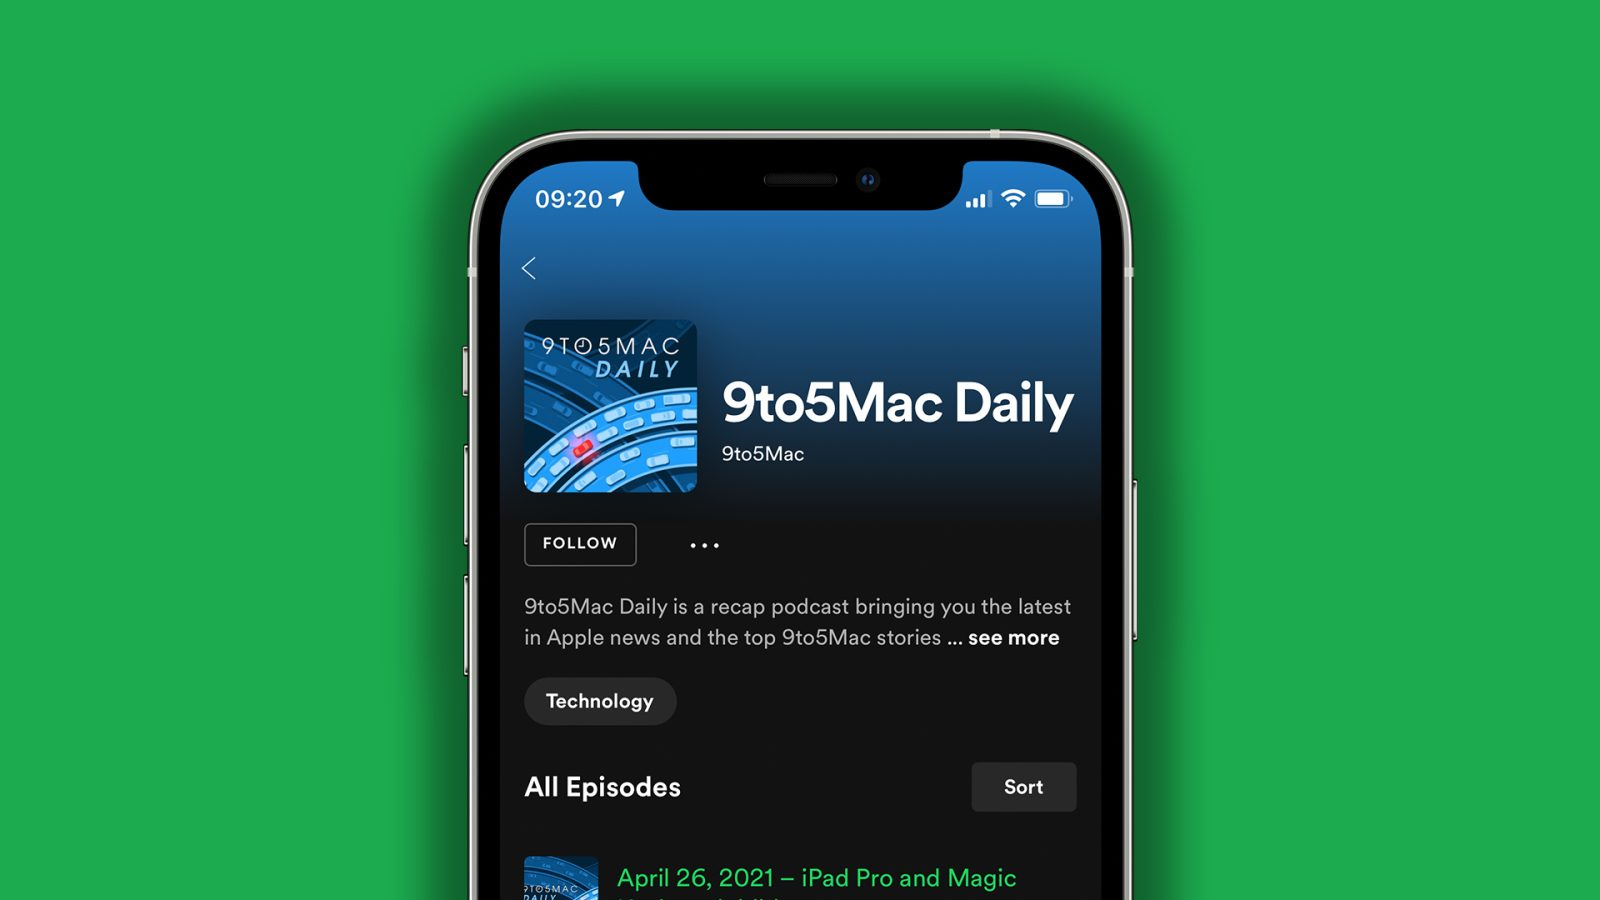 Analyst says Spotify is close to overtaking Apple Podcasts in number of users